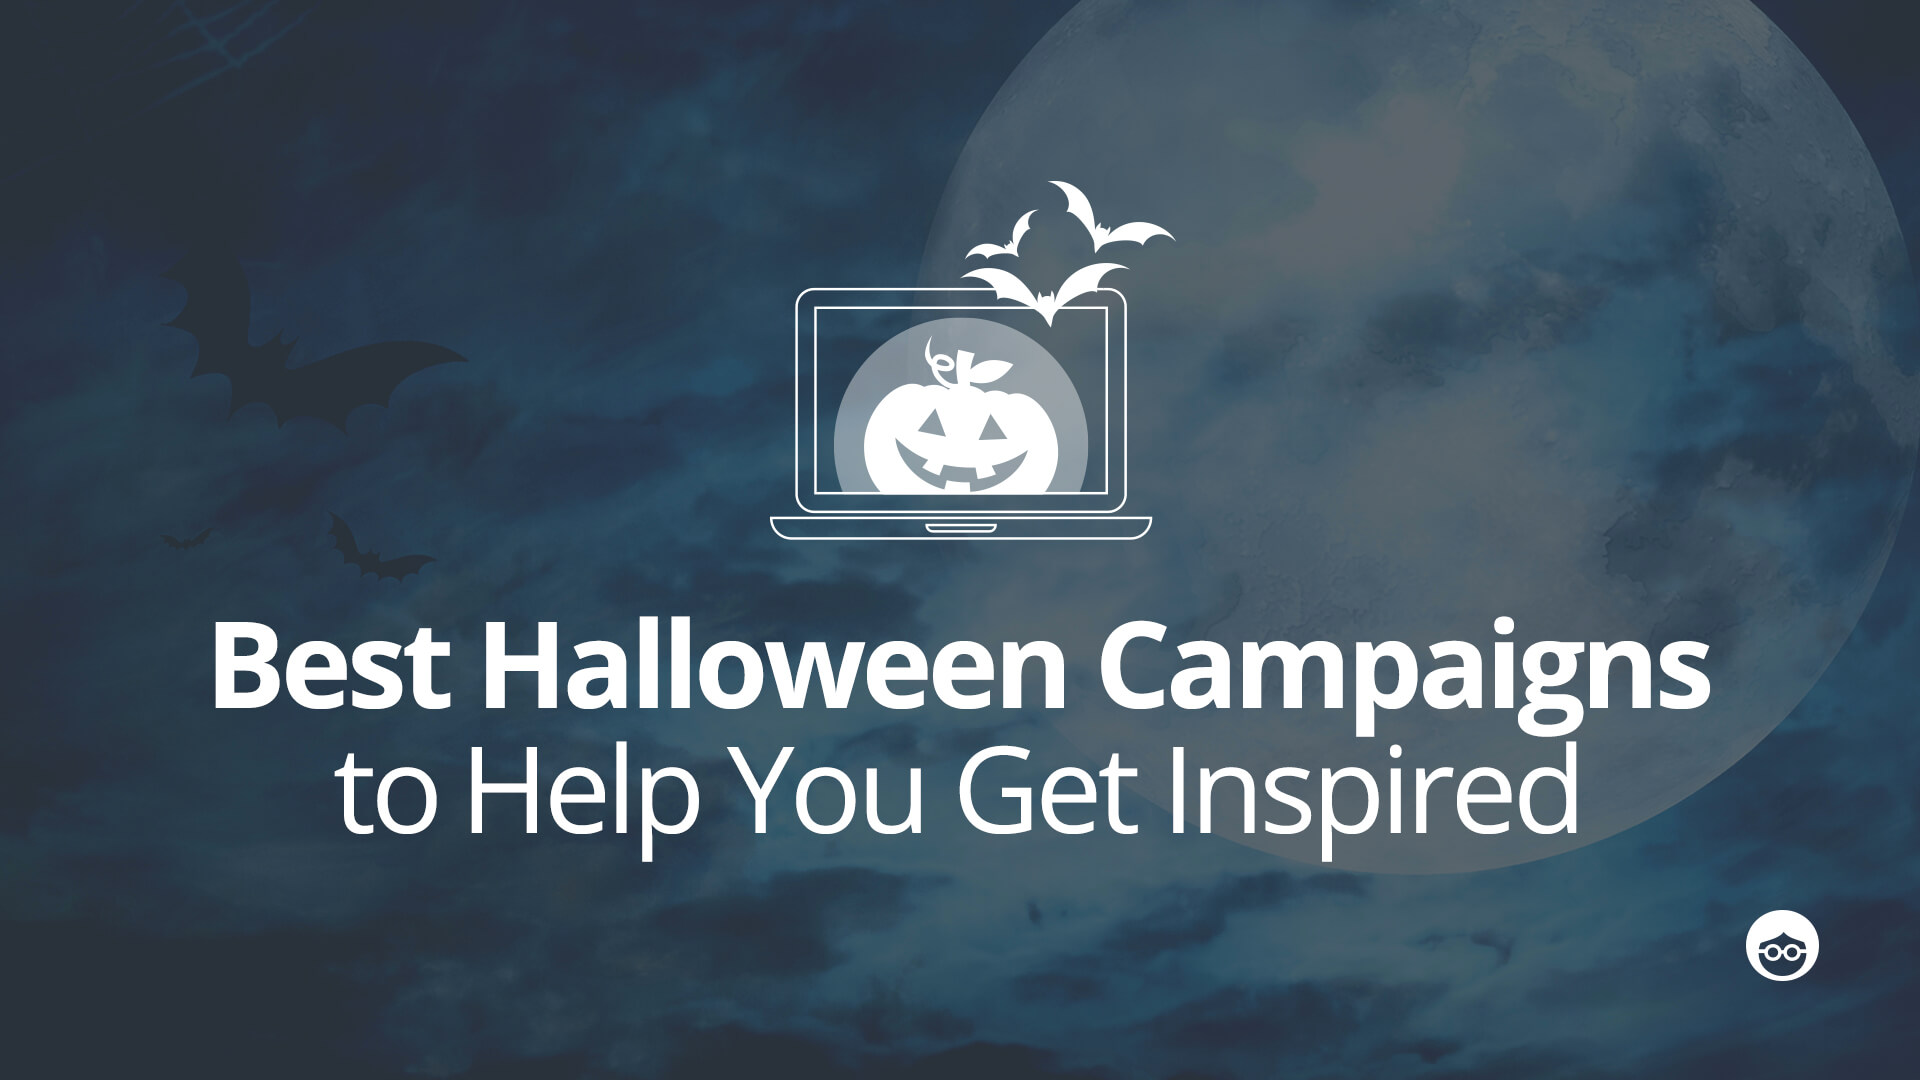 Best B2b Branded Campaigns Of Halloween 2020 12 Best Halloween Marketing Campaigns | Outbrain